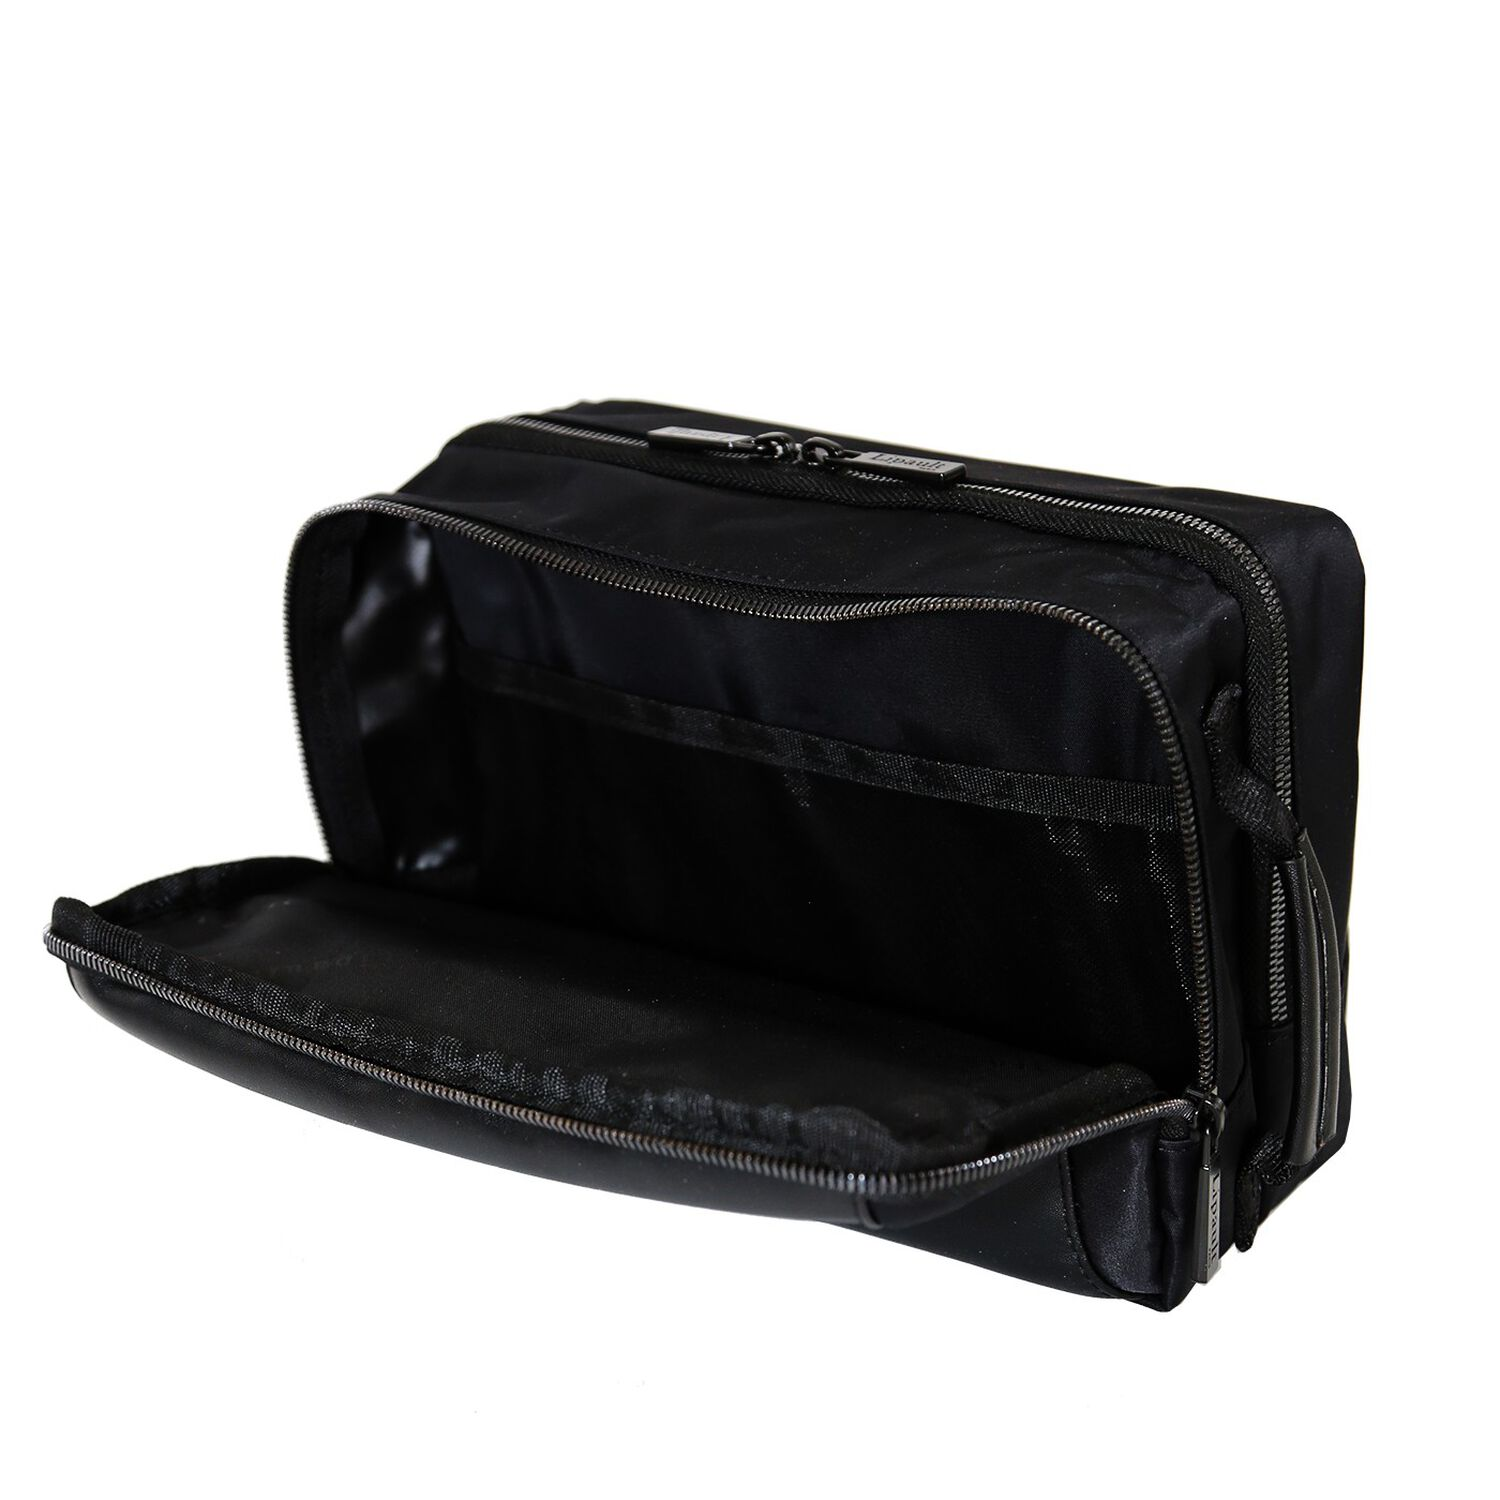 Lipault Plume Premium 10 quot  Dual Compartment Toiletry Kit in the color  ... f96486e4f038f